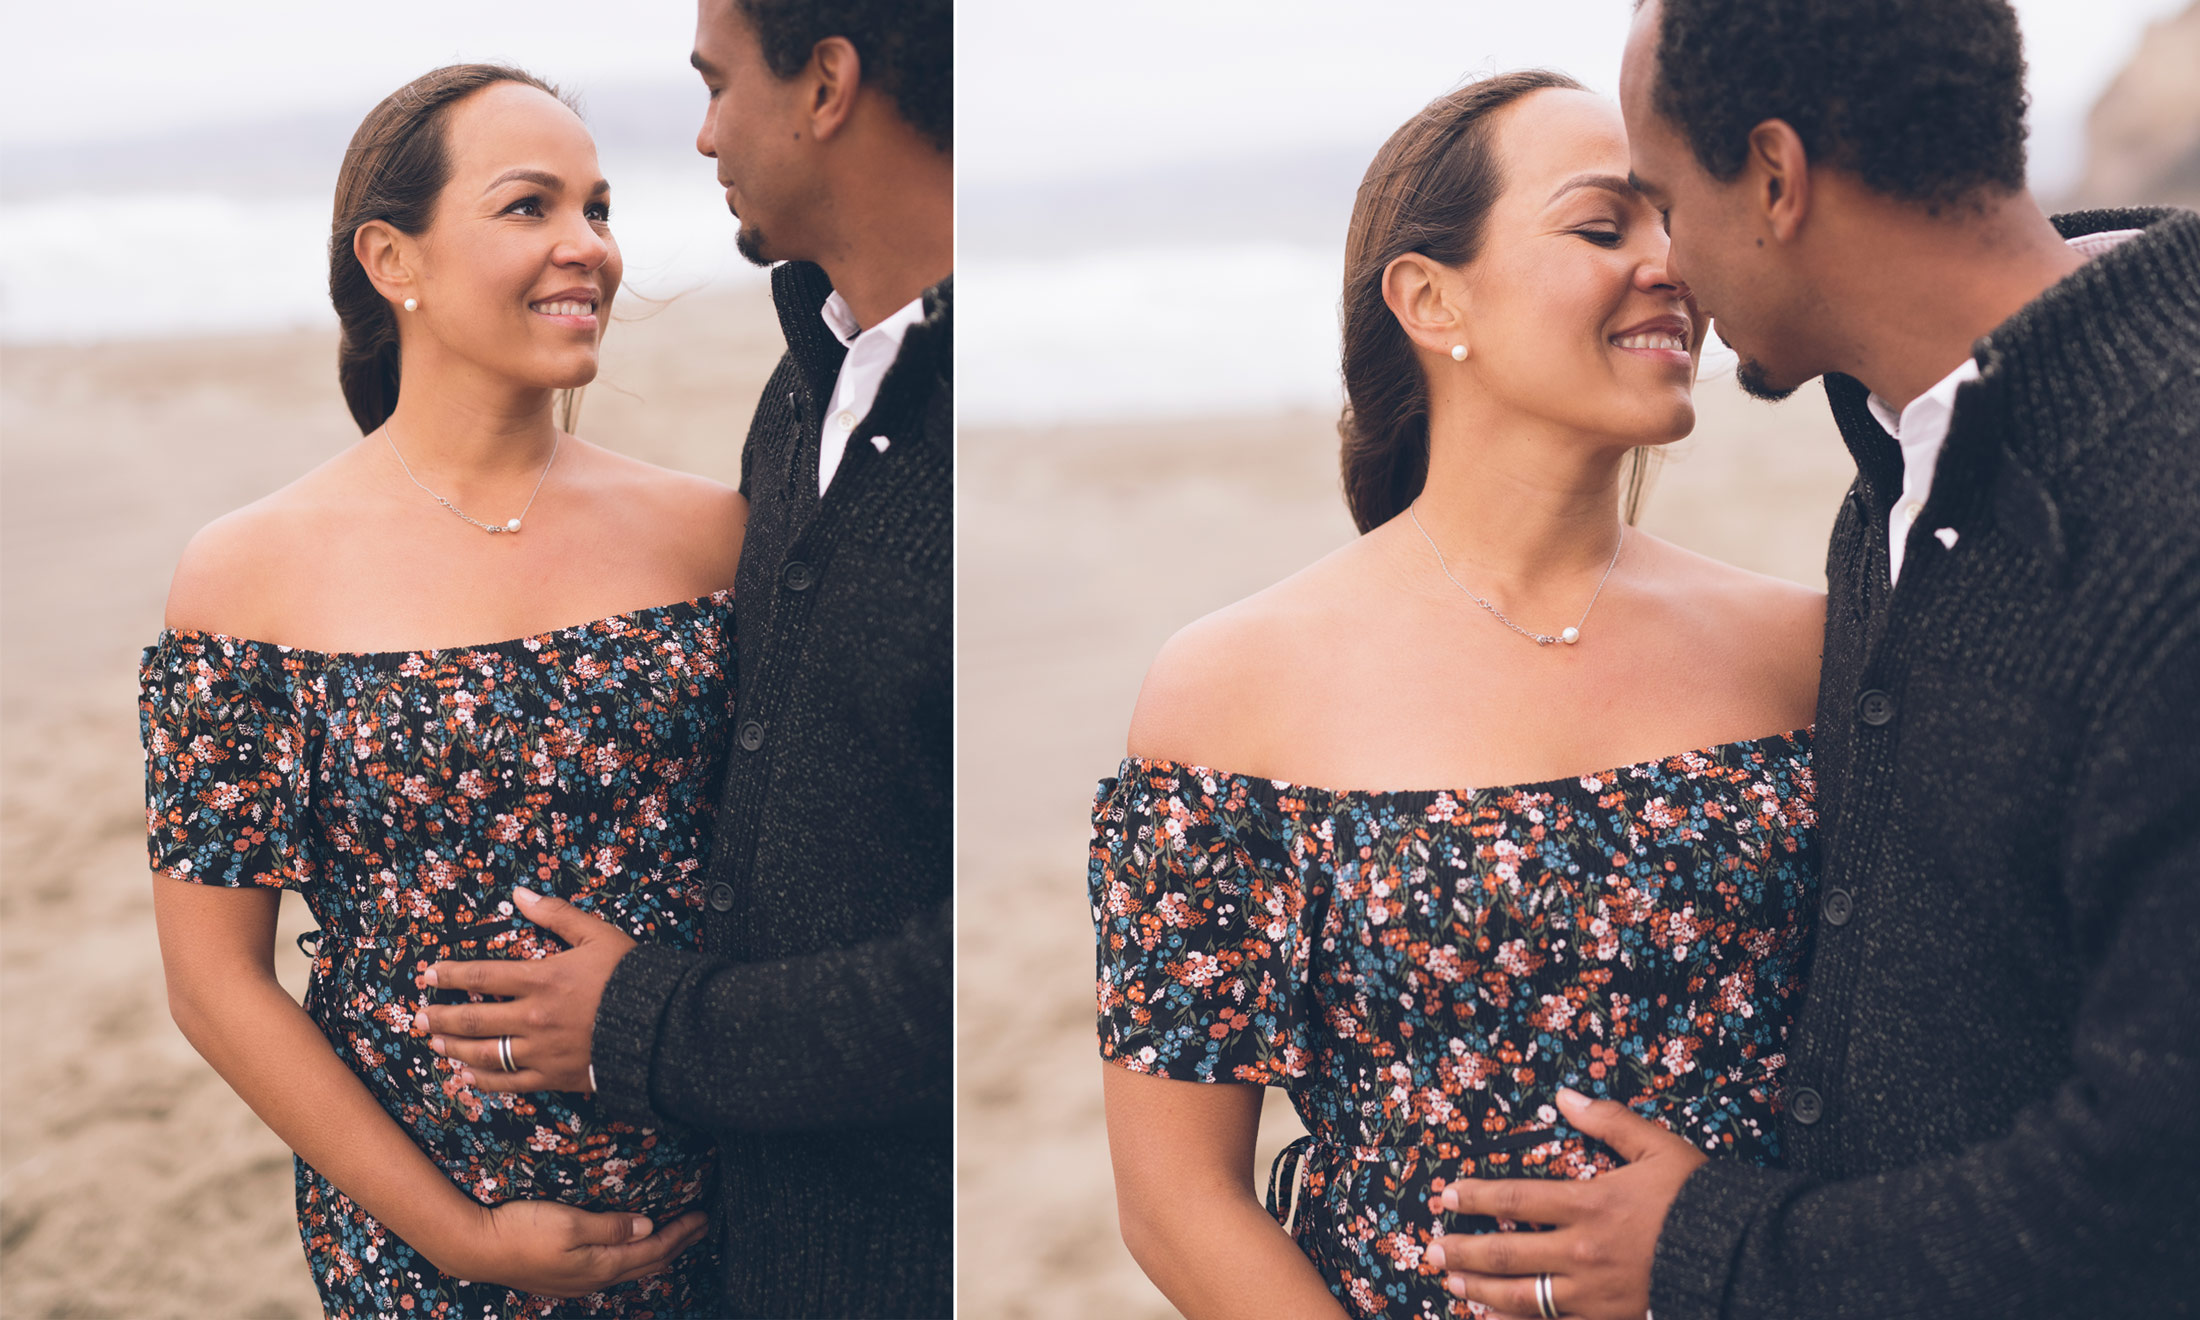 sutro-baths-san-francisco-maternity-session.jpg